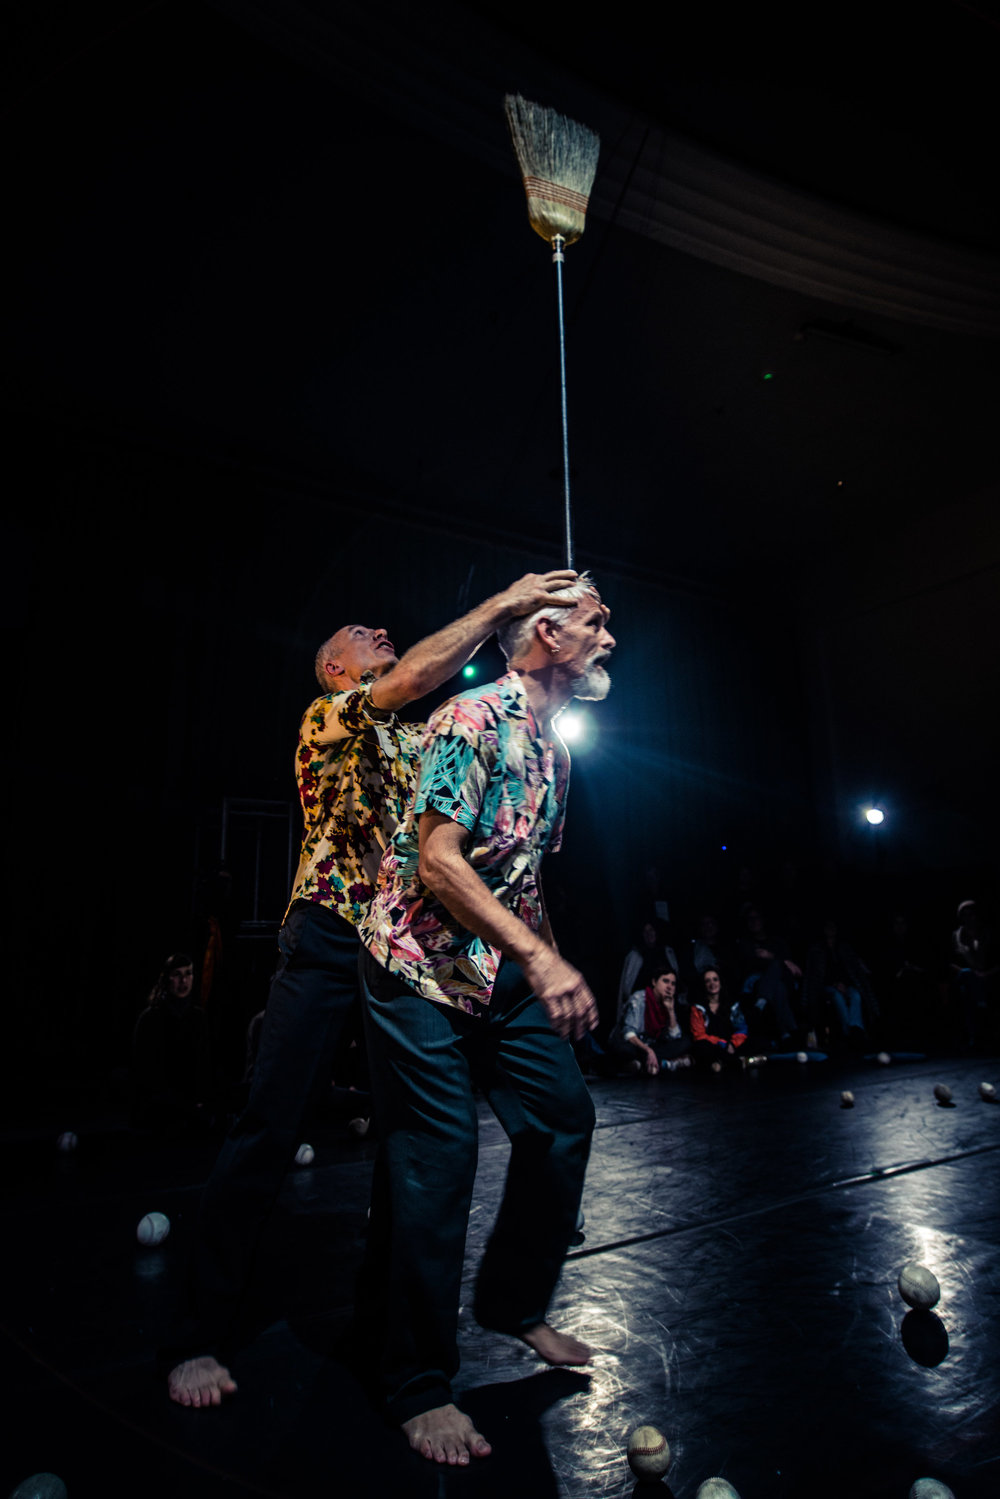 Müller and Curtis, barefoot in wildly patterned short sleeve shirts, balance a broom atop Curtis' head. Audience watches. (photo: Robbie Sweeny)